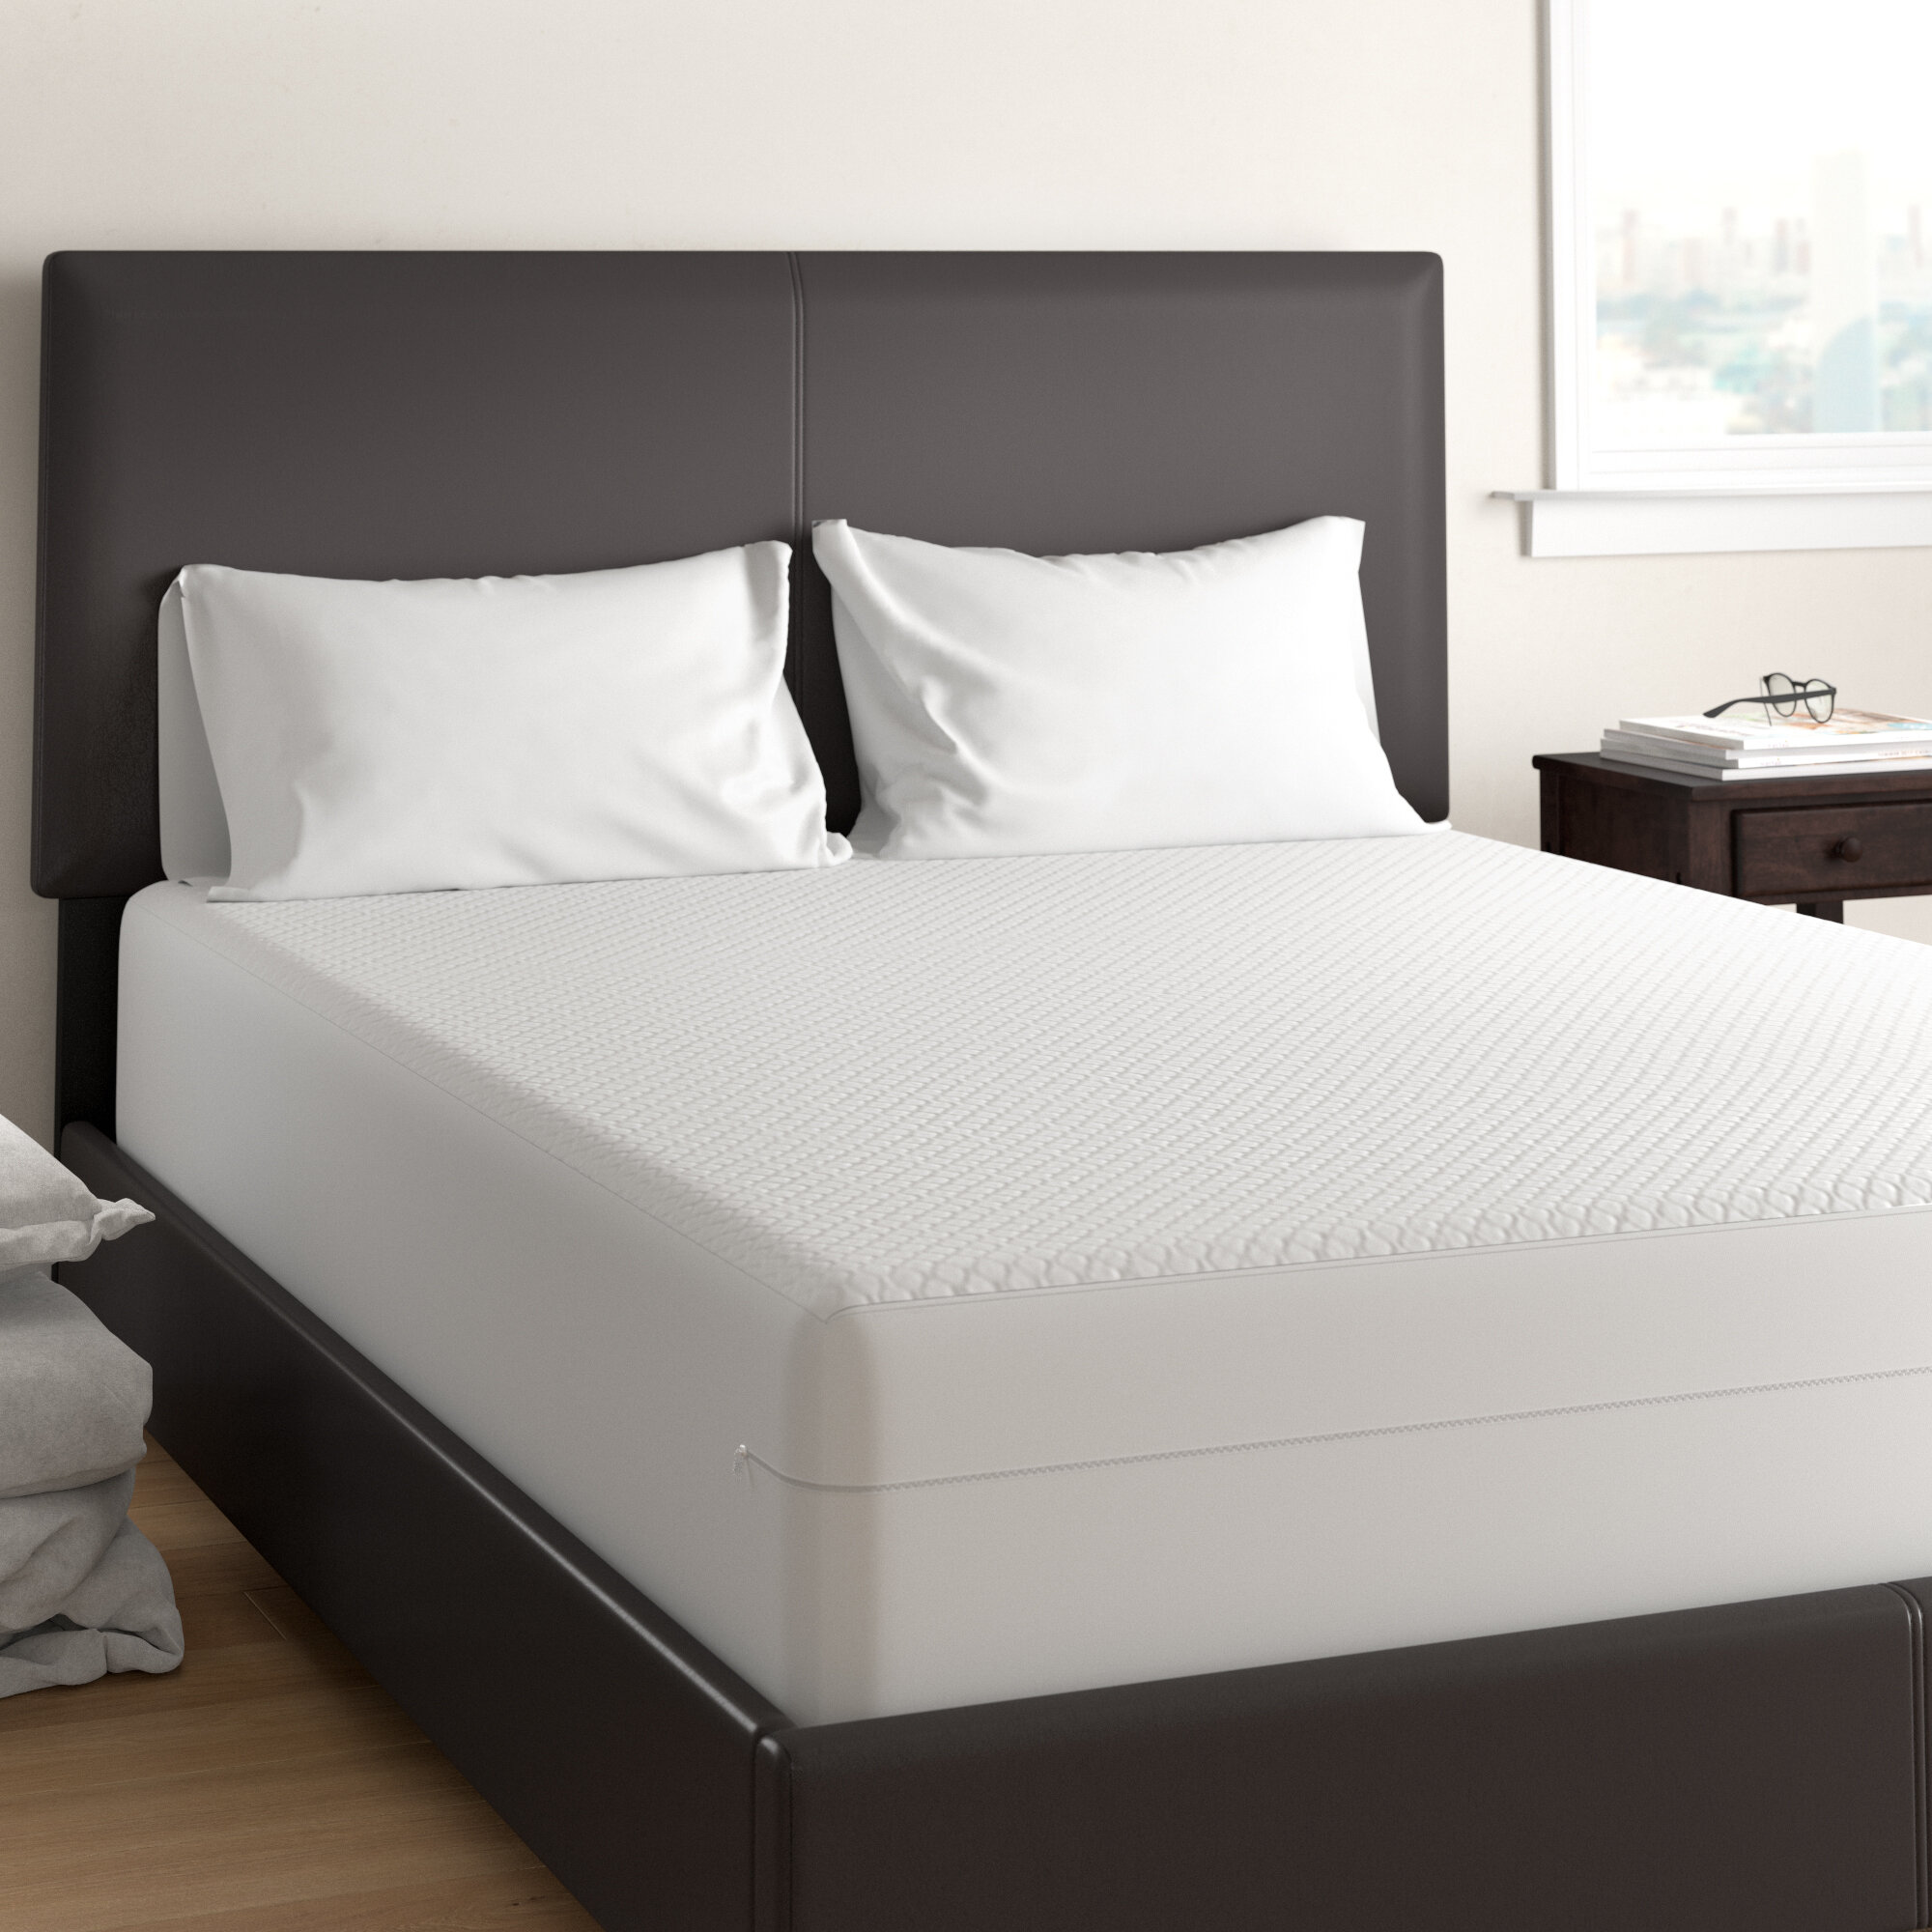 Bed Bug Mattress Cover.Alwyn Home Betances All In One Bed Bug Blocker Hypoallergenic And